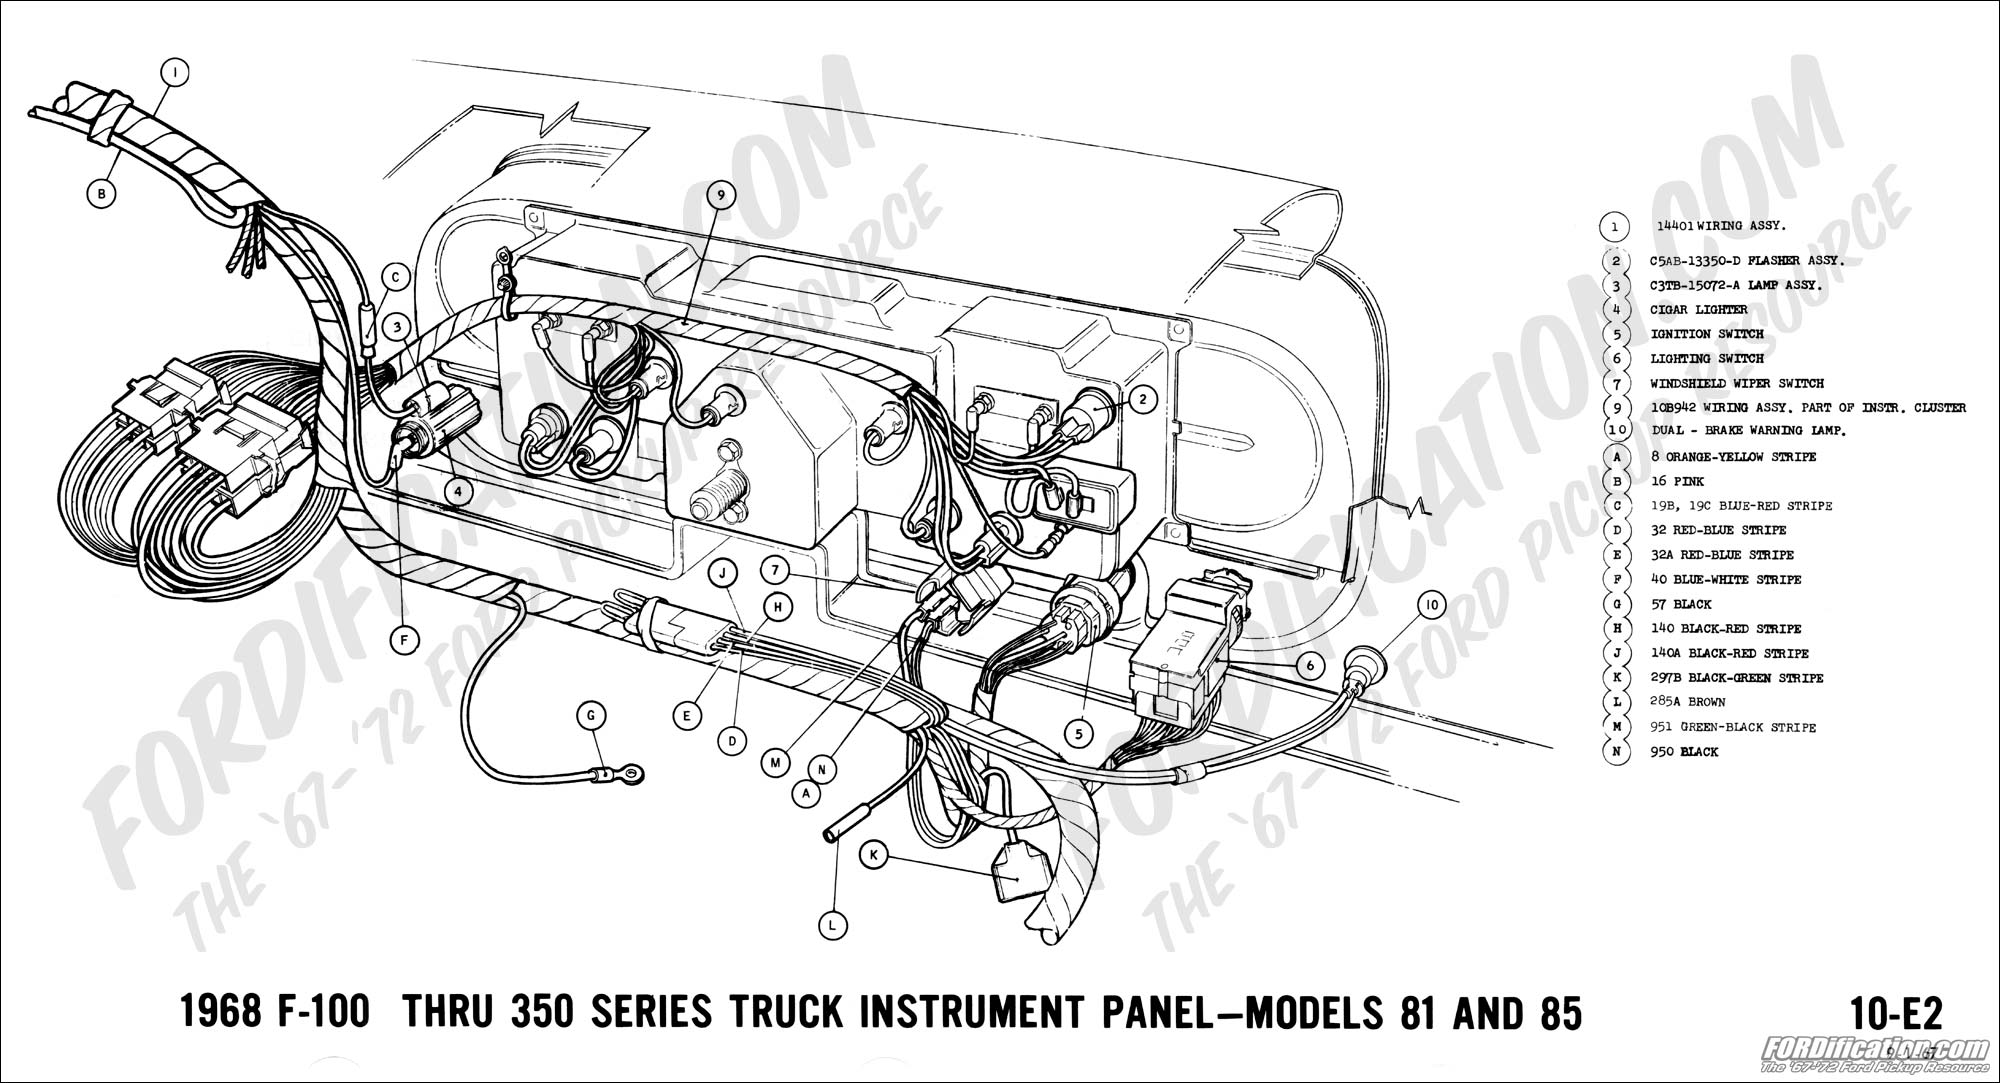 71 Corvette Wiper Wiring Diagrams Library Motor Diagram On 1965 Ford Mustang 1969 Cougar Ignition Trusted 1968